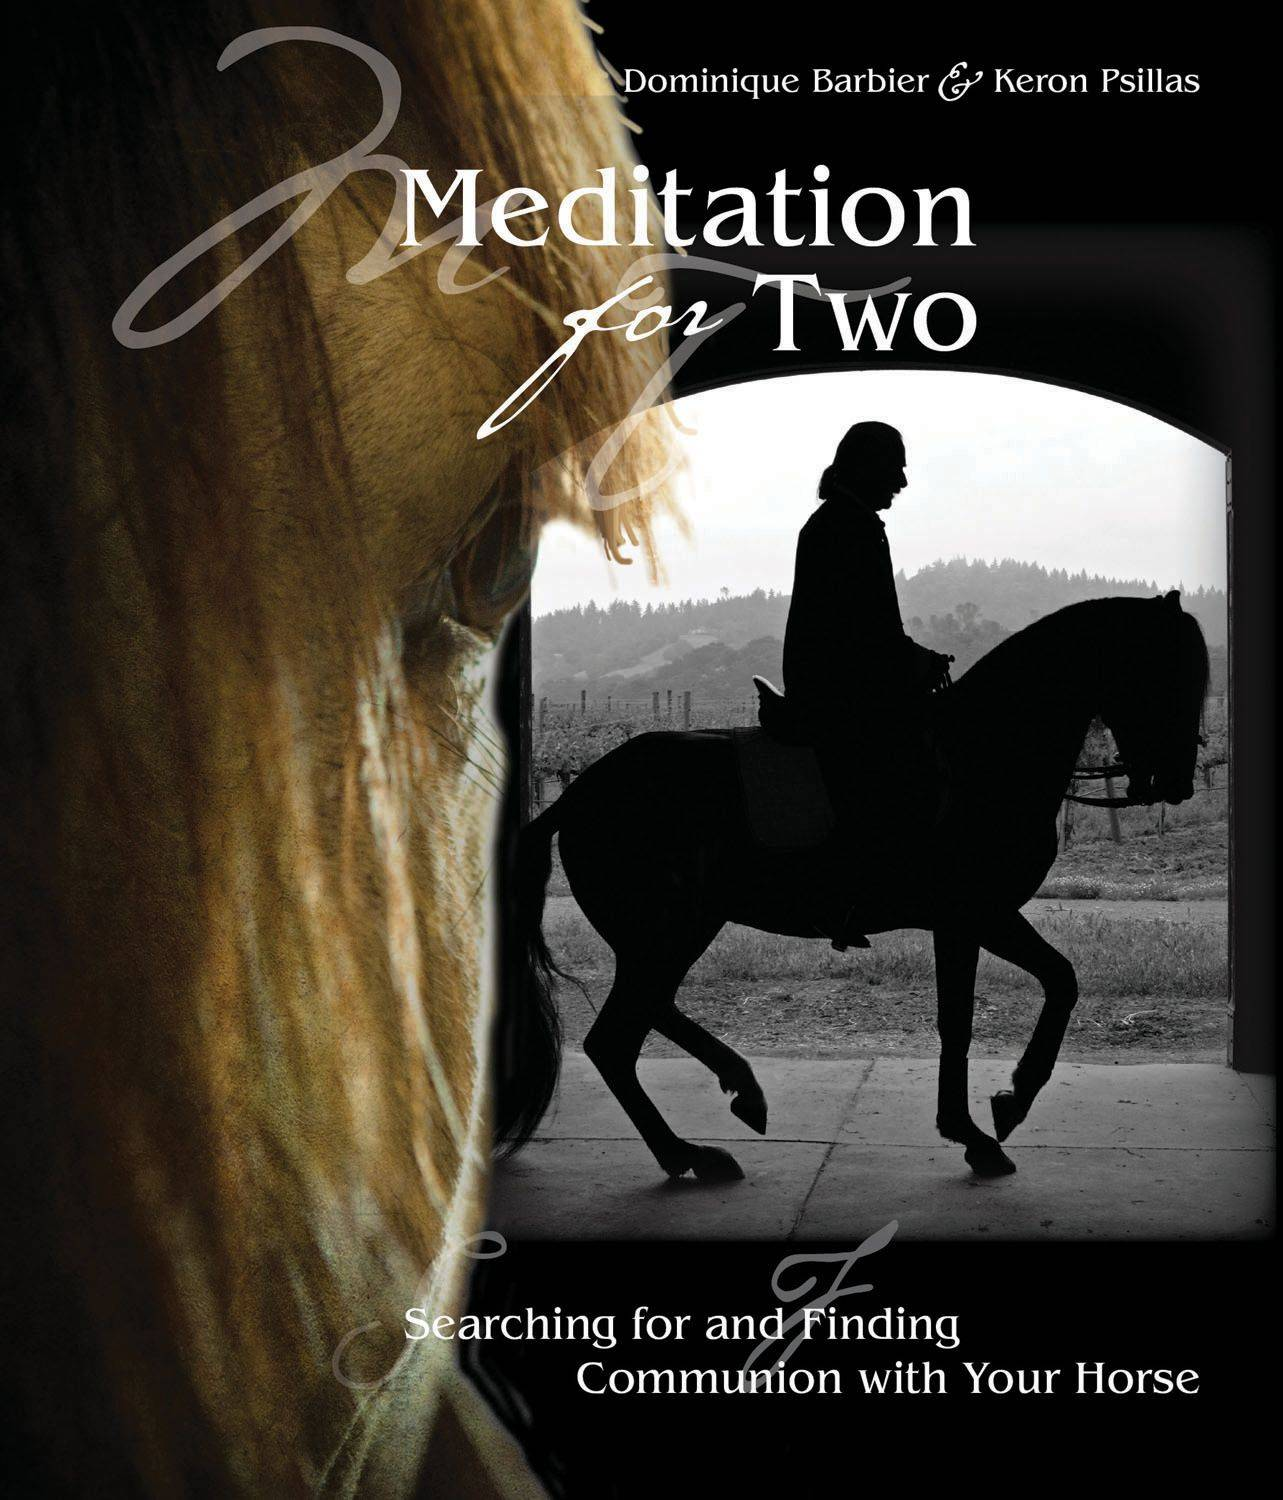 Meditation for Two-Dominique Barbier and Keron Paillas